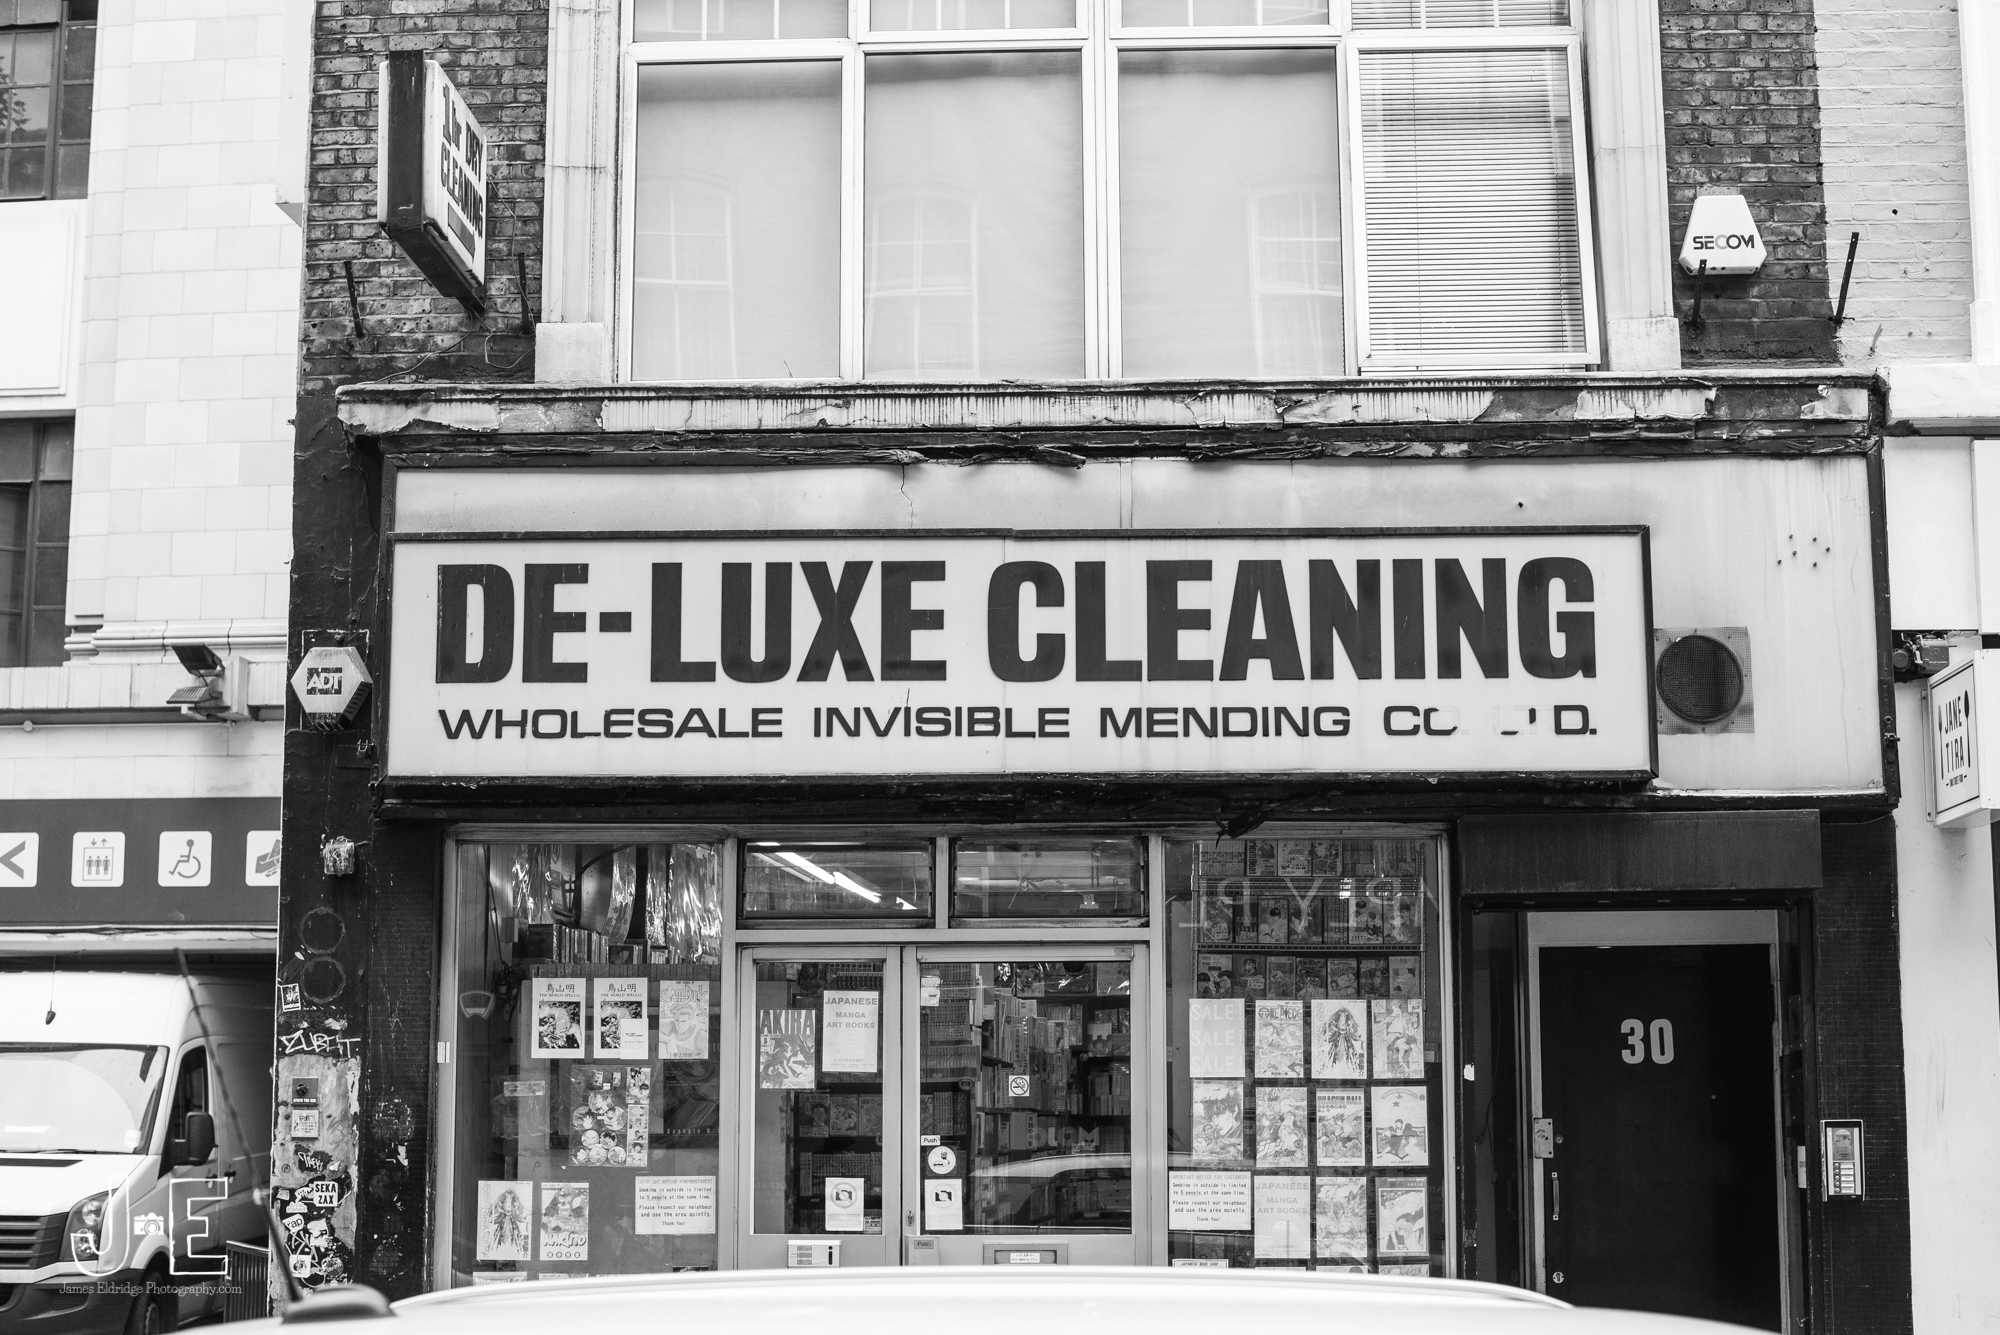 De-luxe Cleaning - London